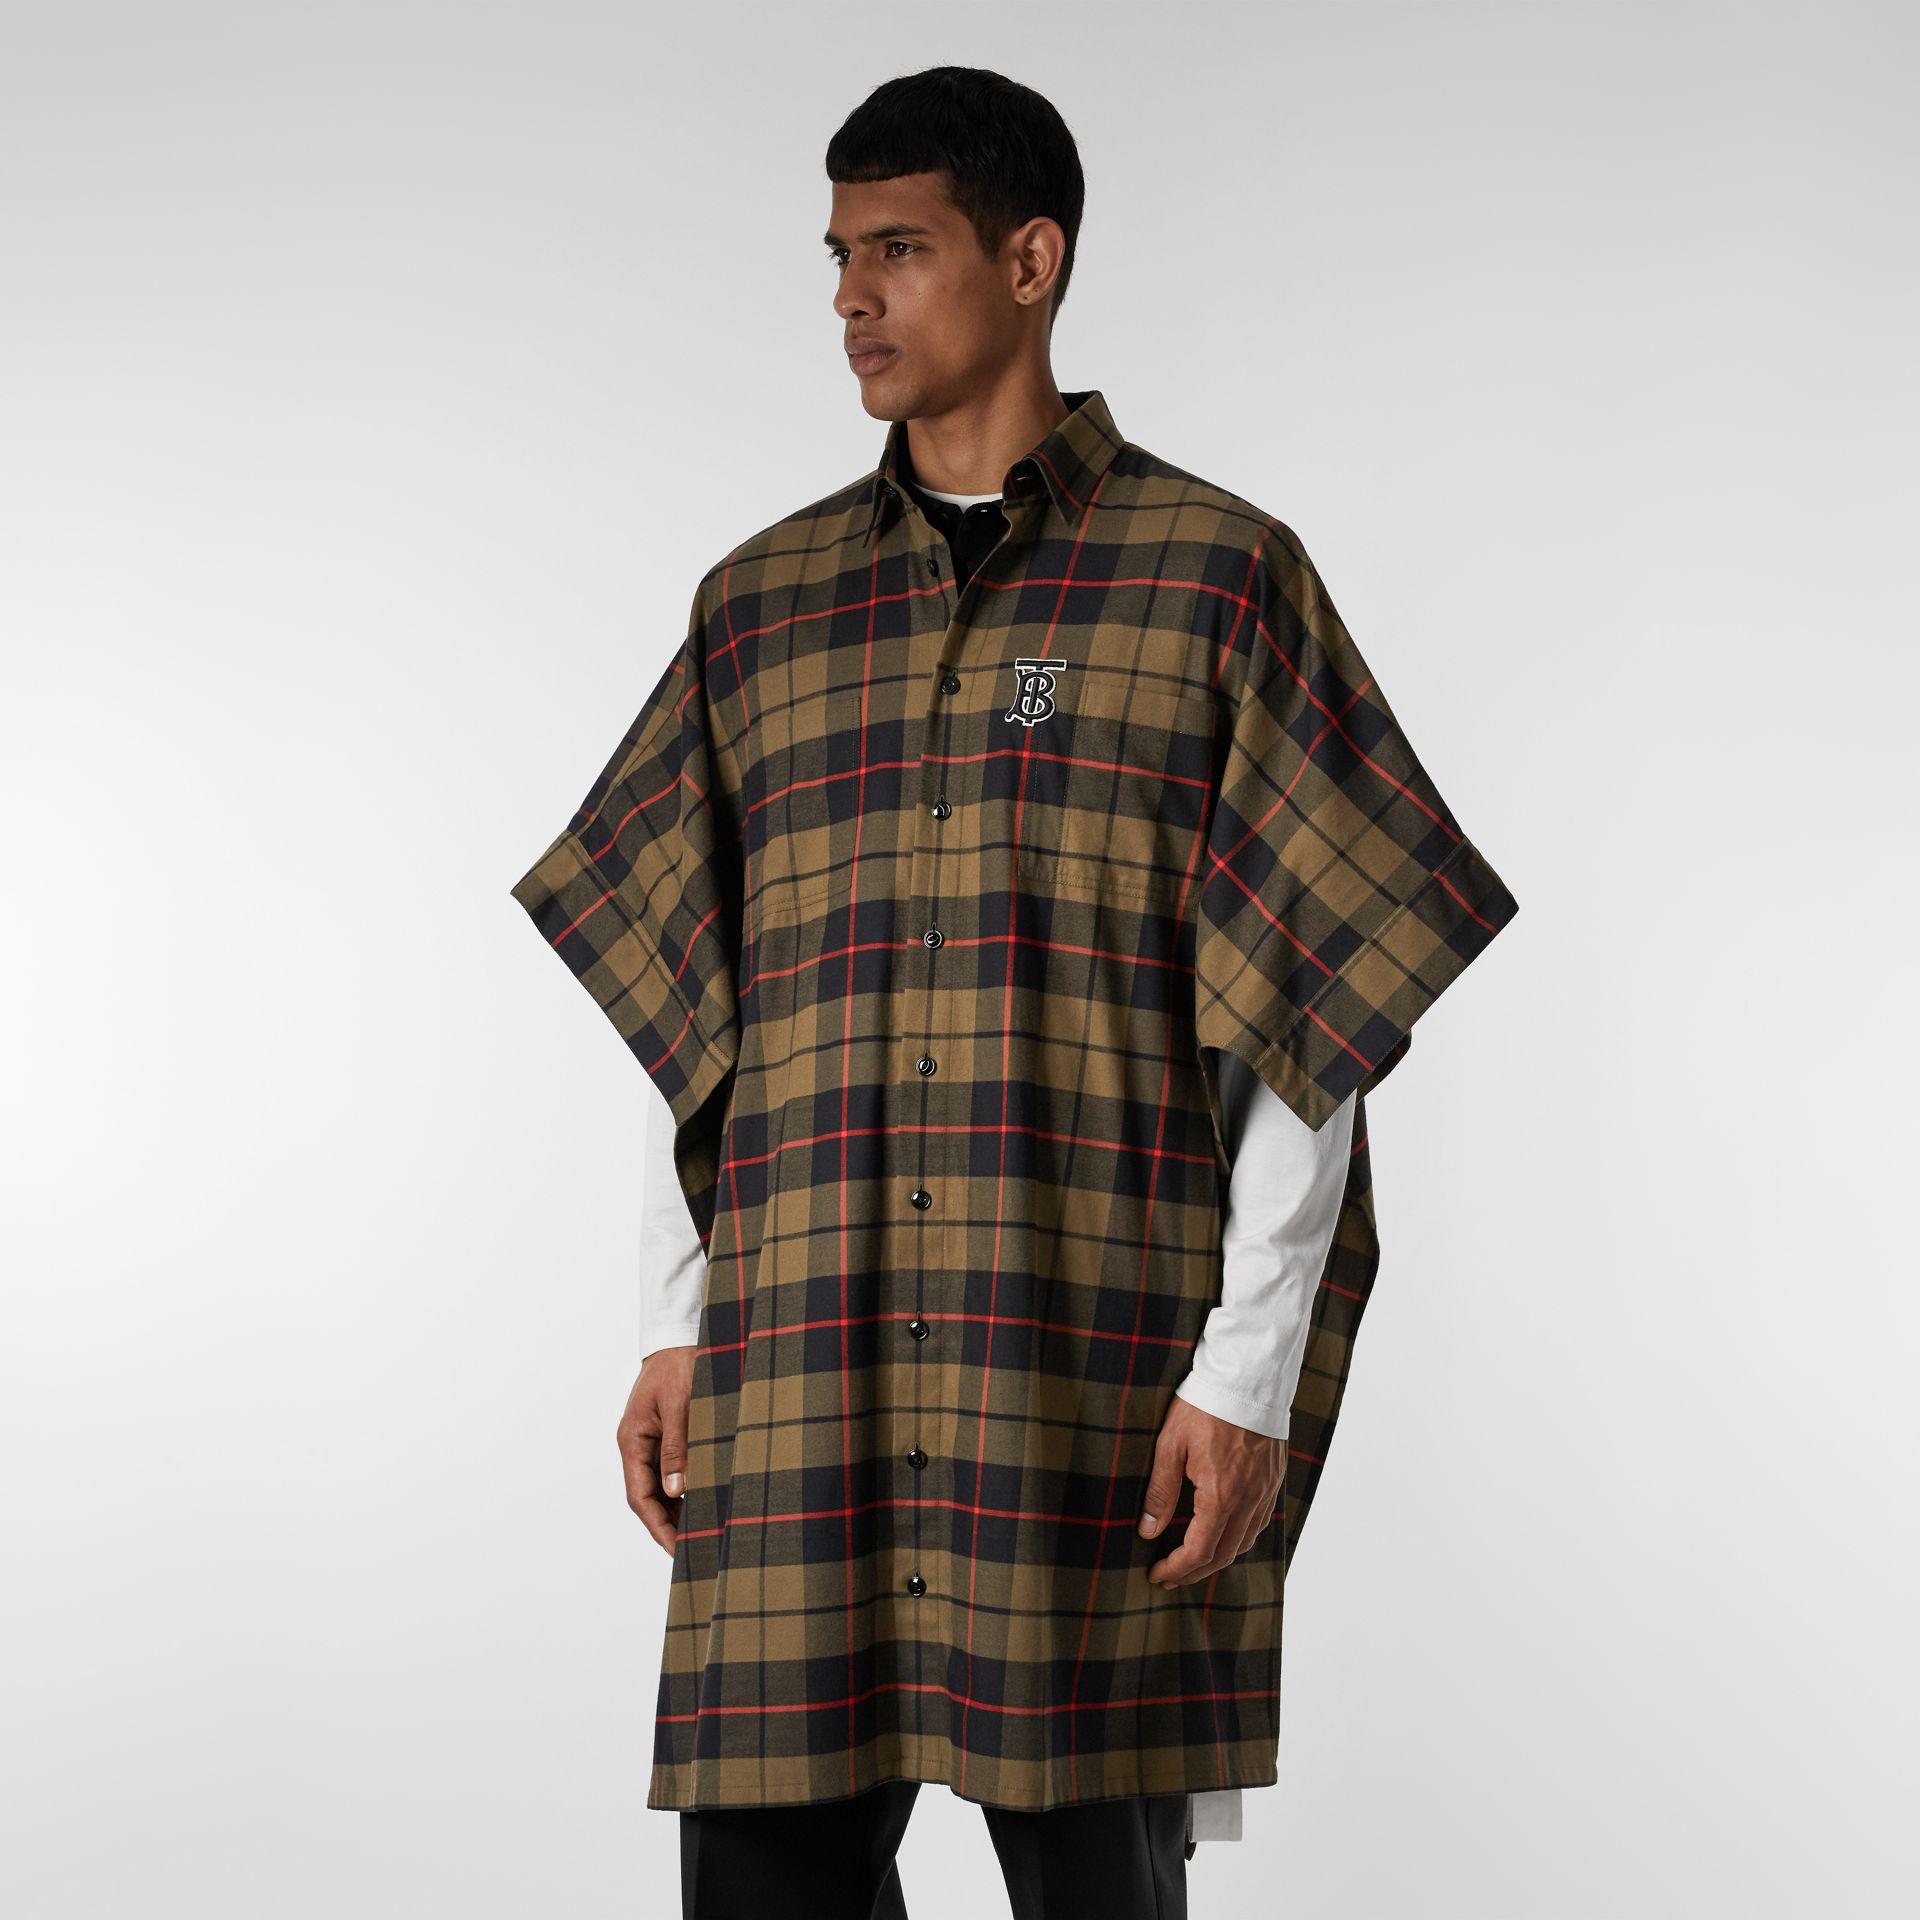 Monogram Motif Check Cotton Oversized Poncho in Military Olive | Burberry United States - gallery image 10